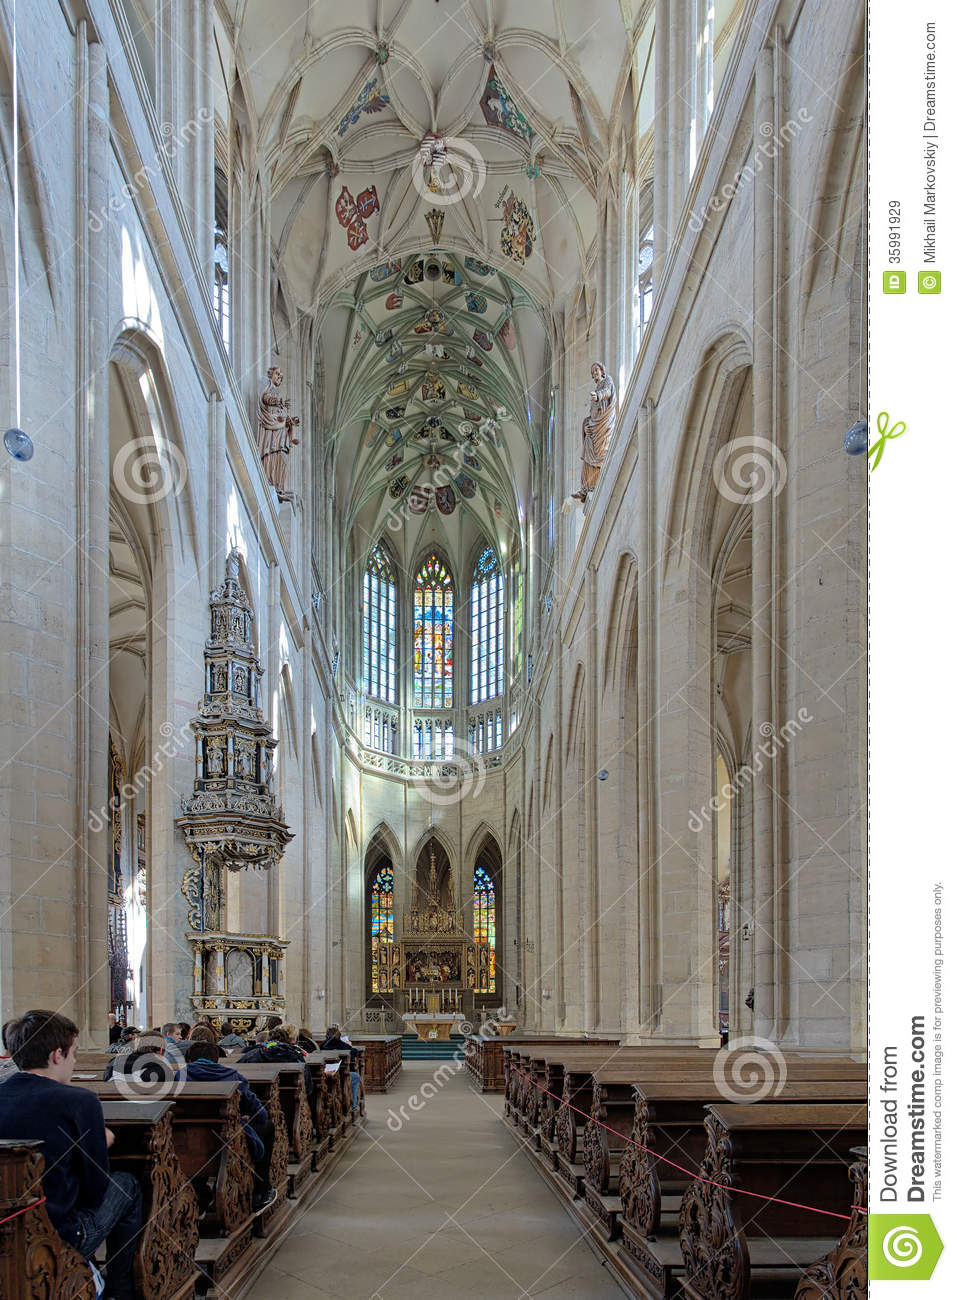 Dreamstime Images Interior Of St Barbara Church In Kutna Hora Editorial